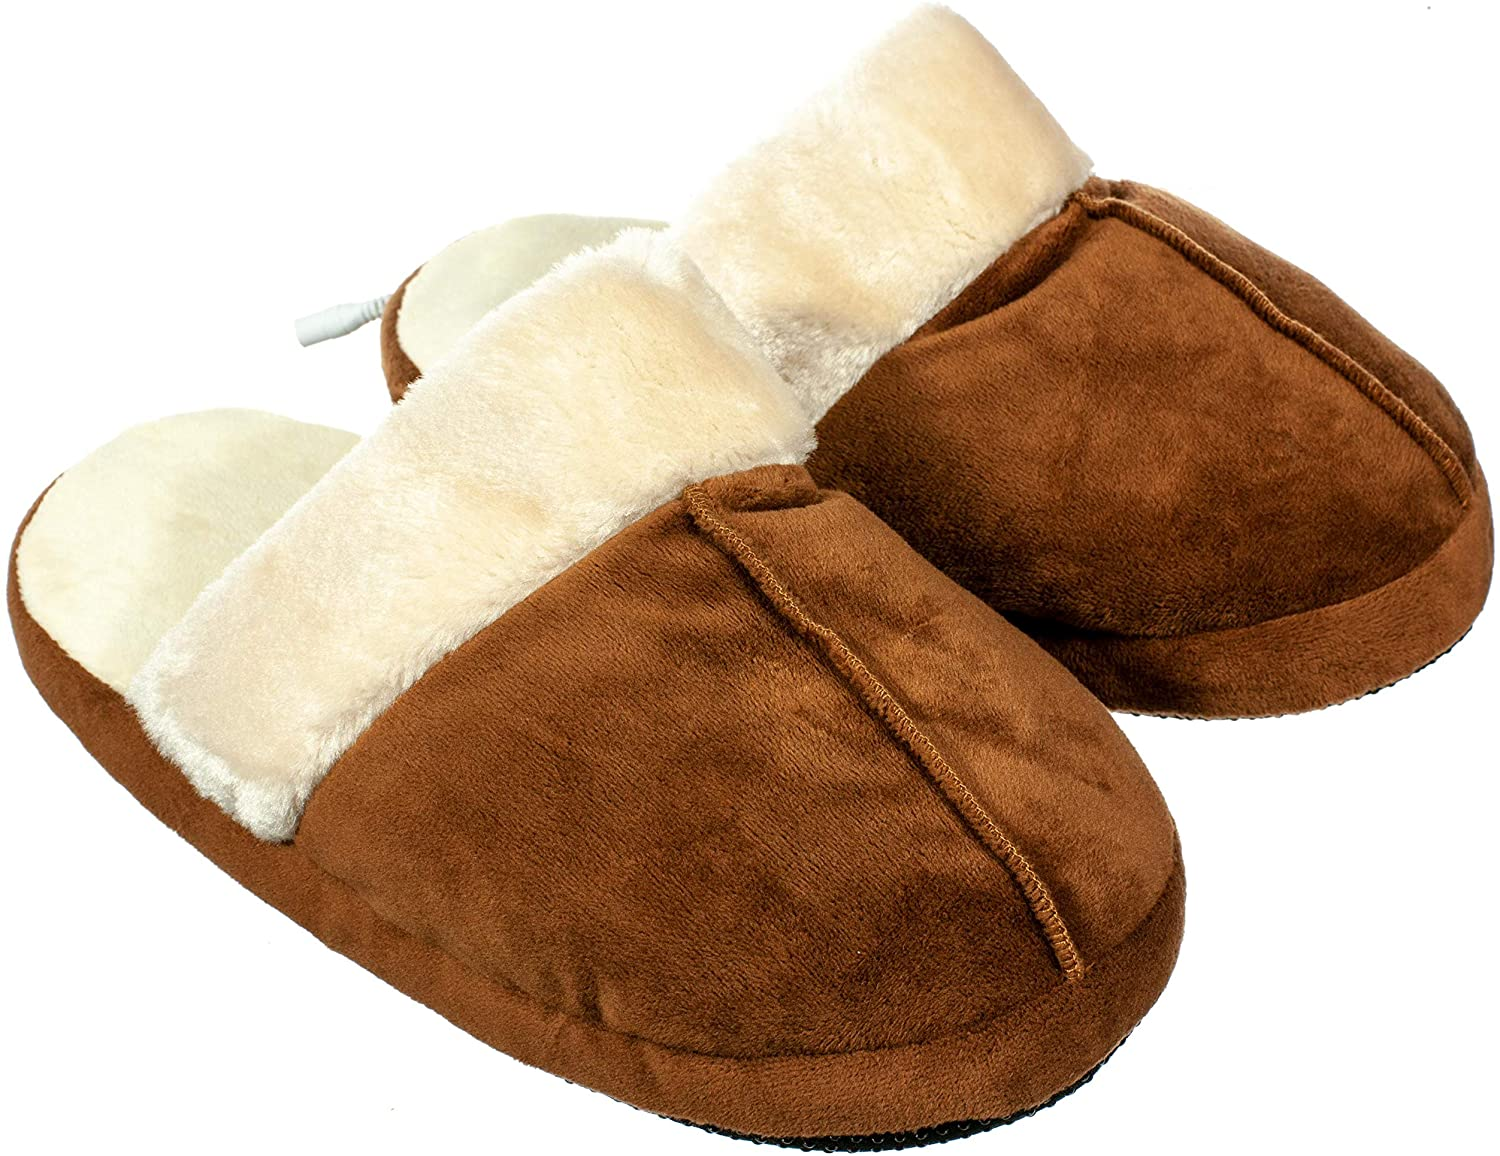 Calming Covers USB Heated Slipper | Built in Foot Warmer pad Heats Your feet to Keep Your tootsies Toasty